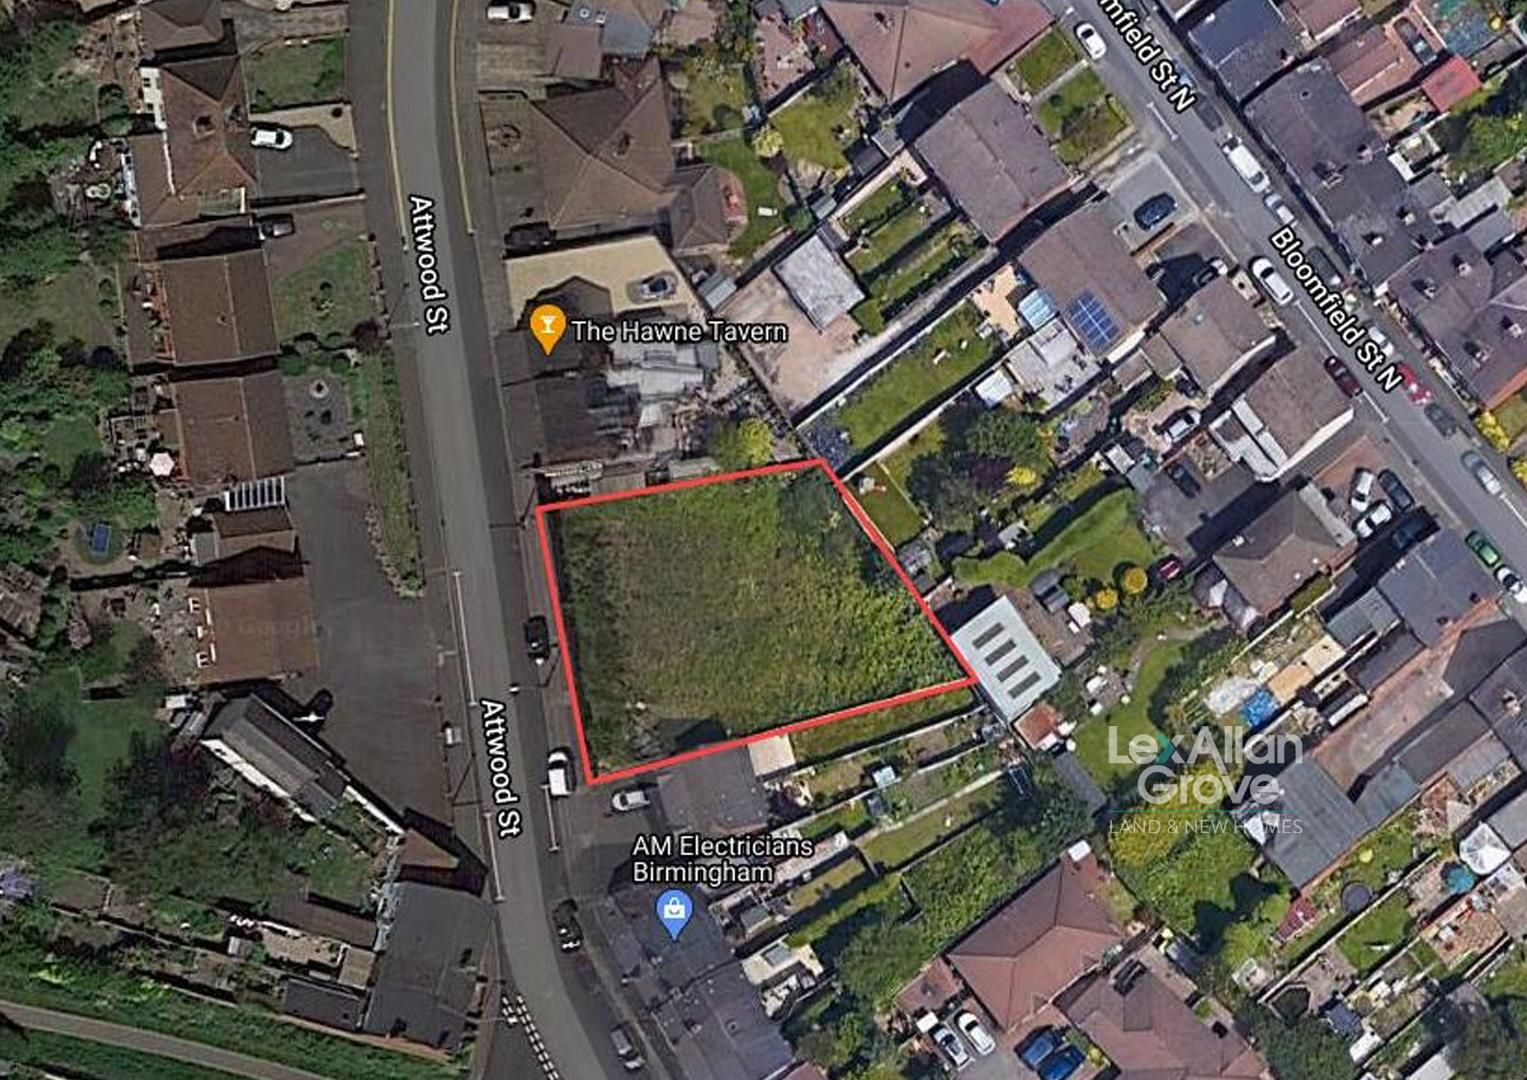 Land for sale 5